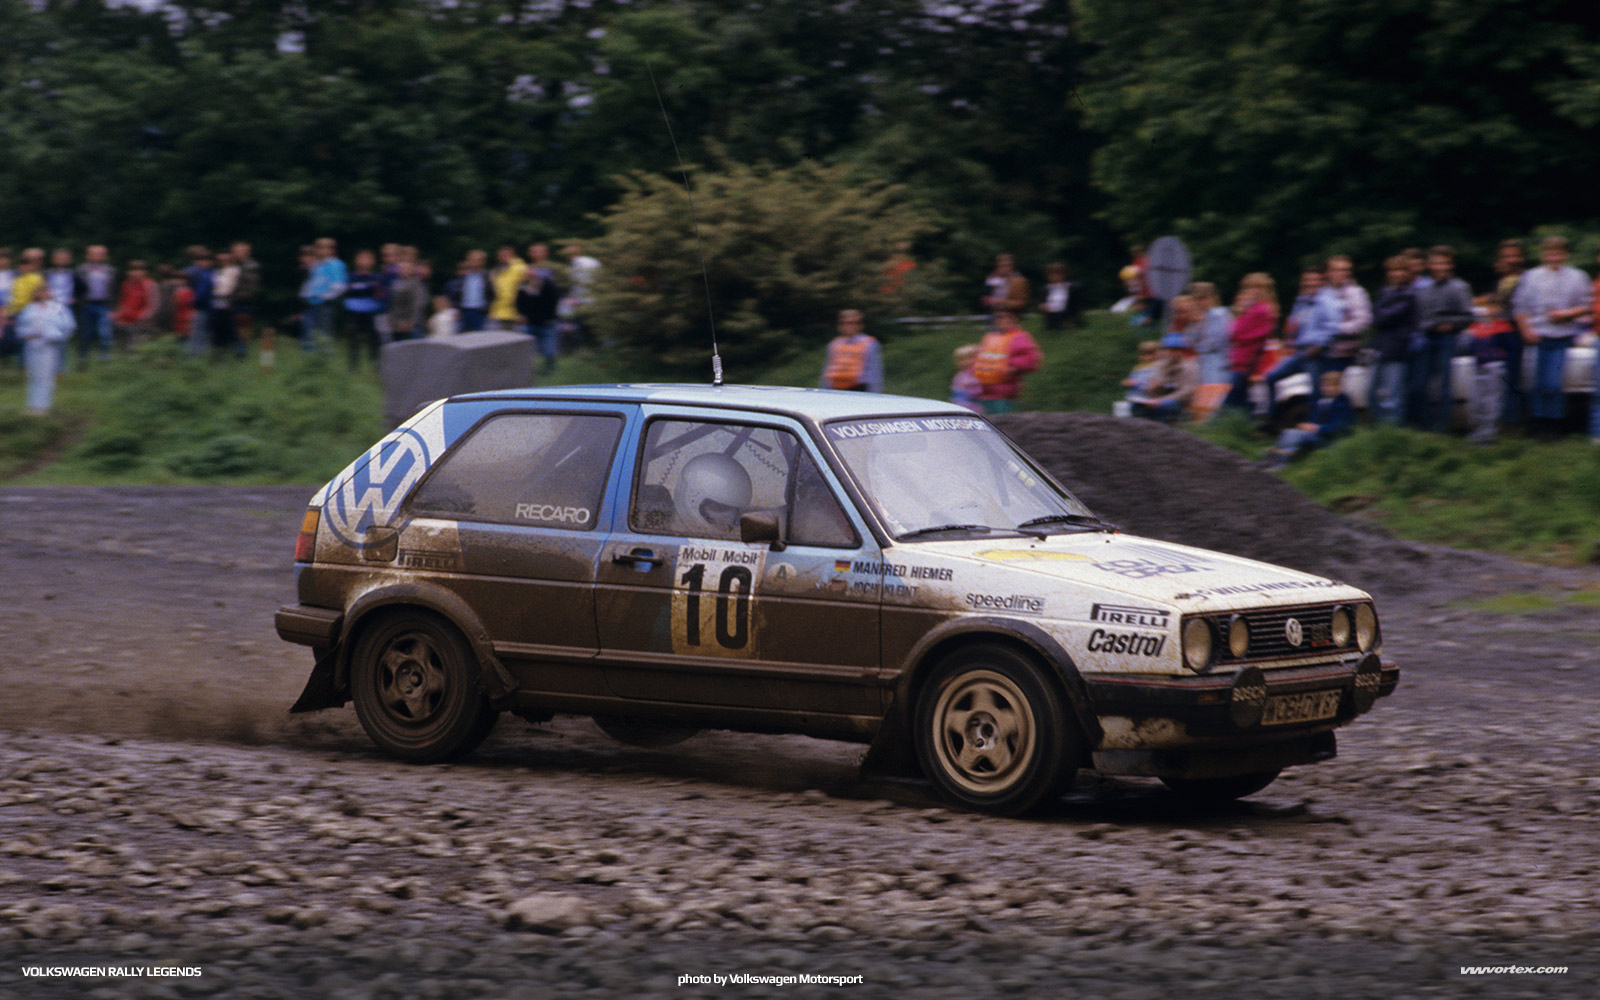 volkswagen-rally-legends-393